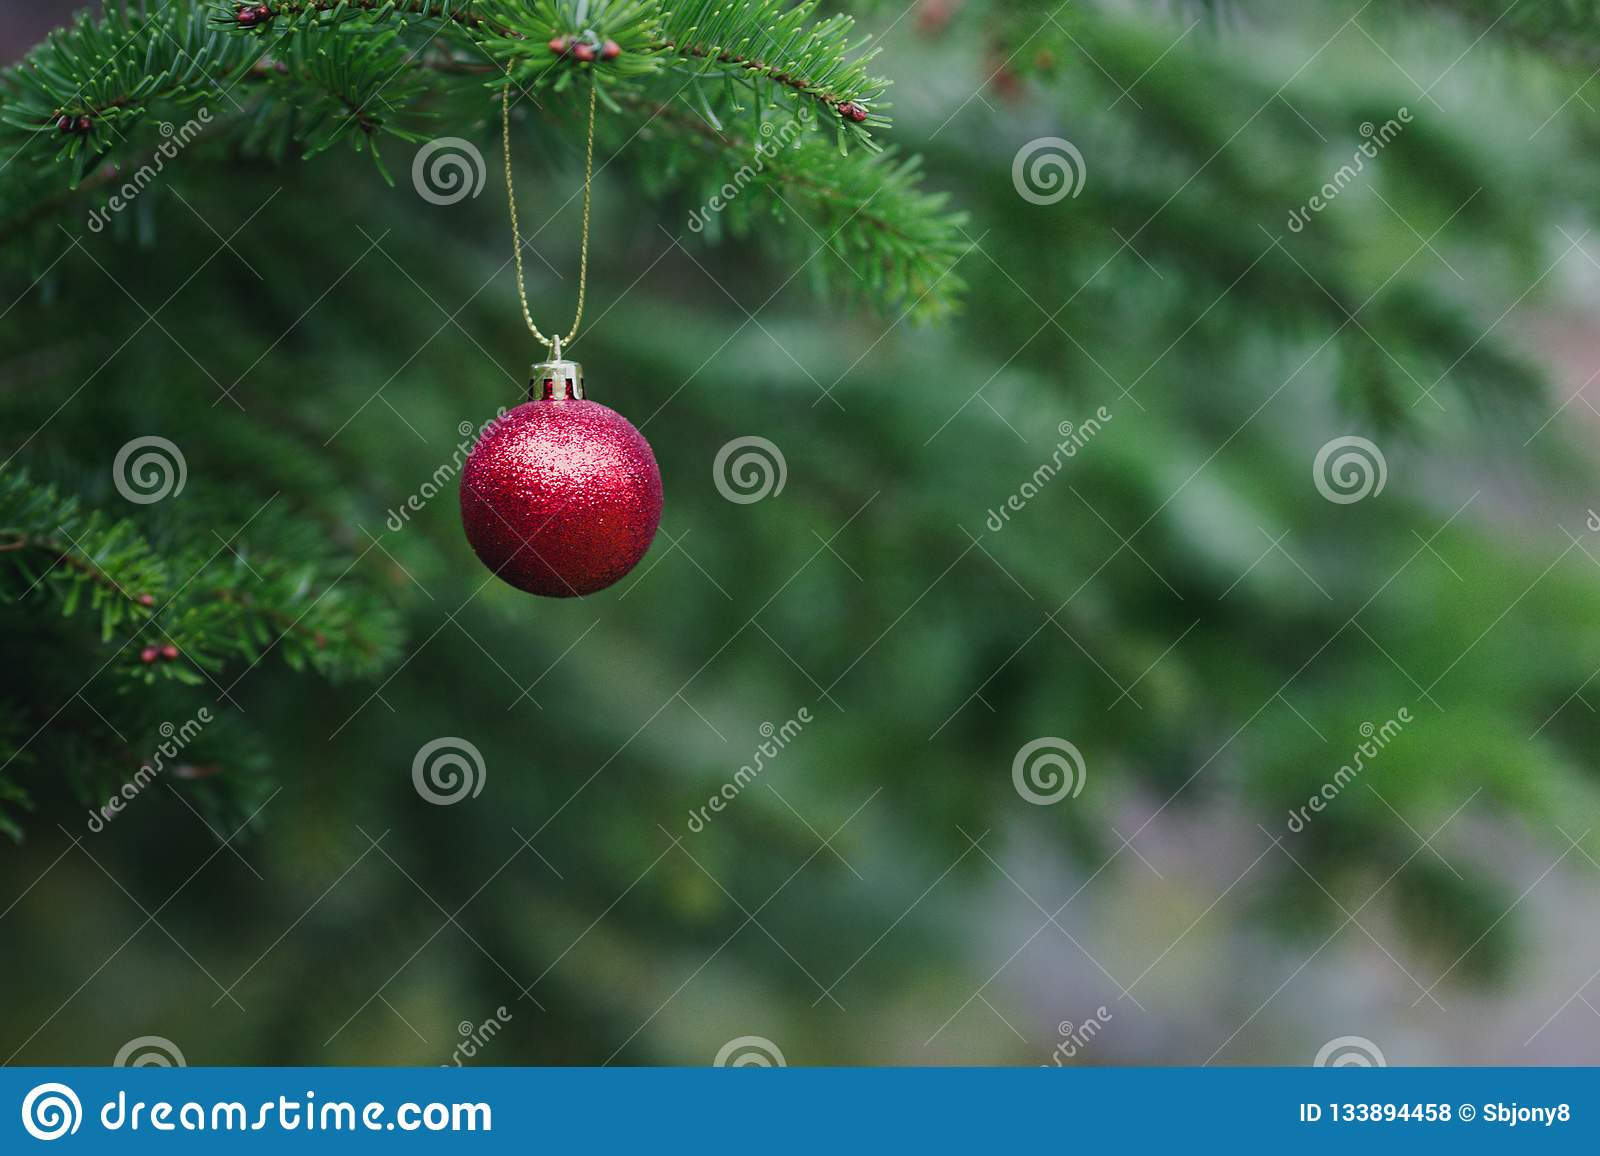 Close-up view of red ball as decoration hanging on the branches of a Christmas tree and sparkling in the sunshine. Christmas in